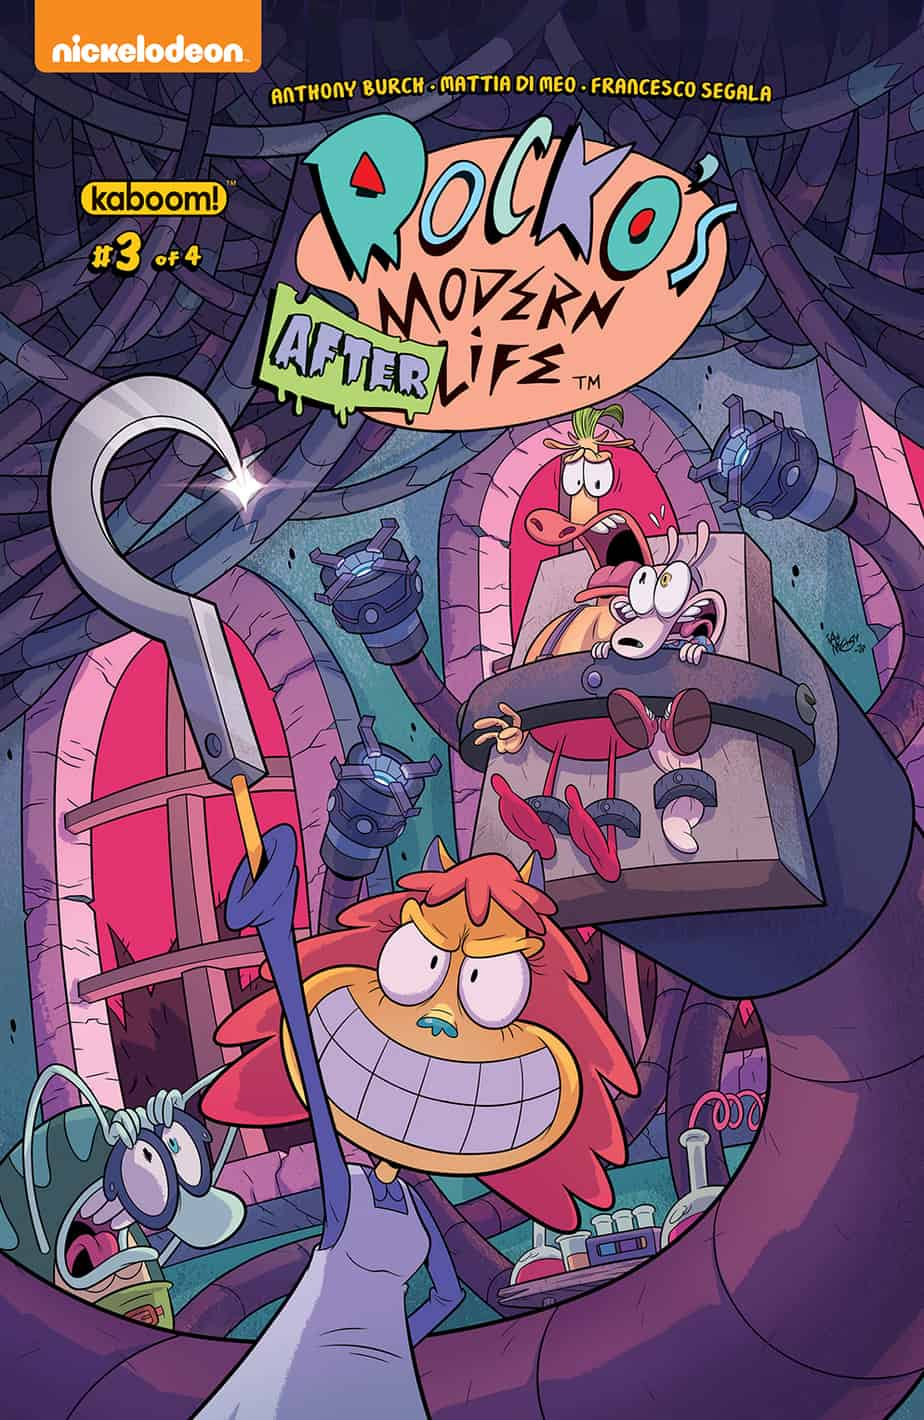 Rocko's Modern Afterlife #3 - Main Cover